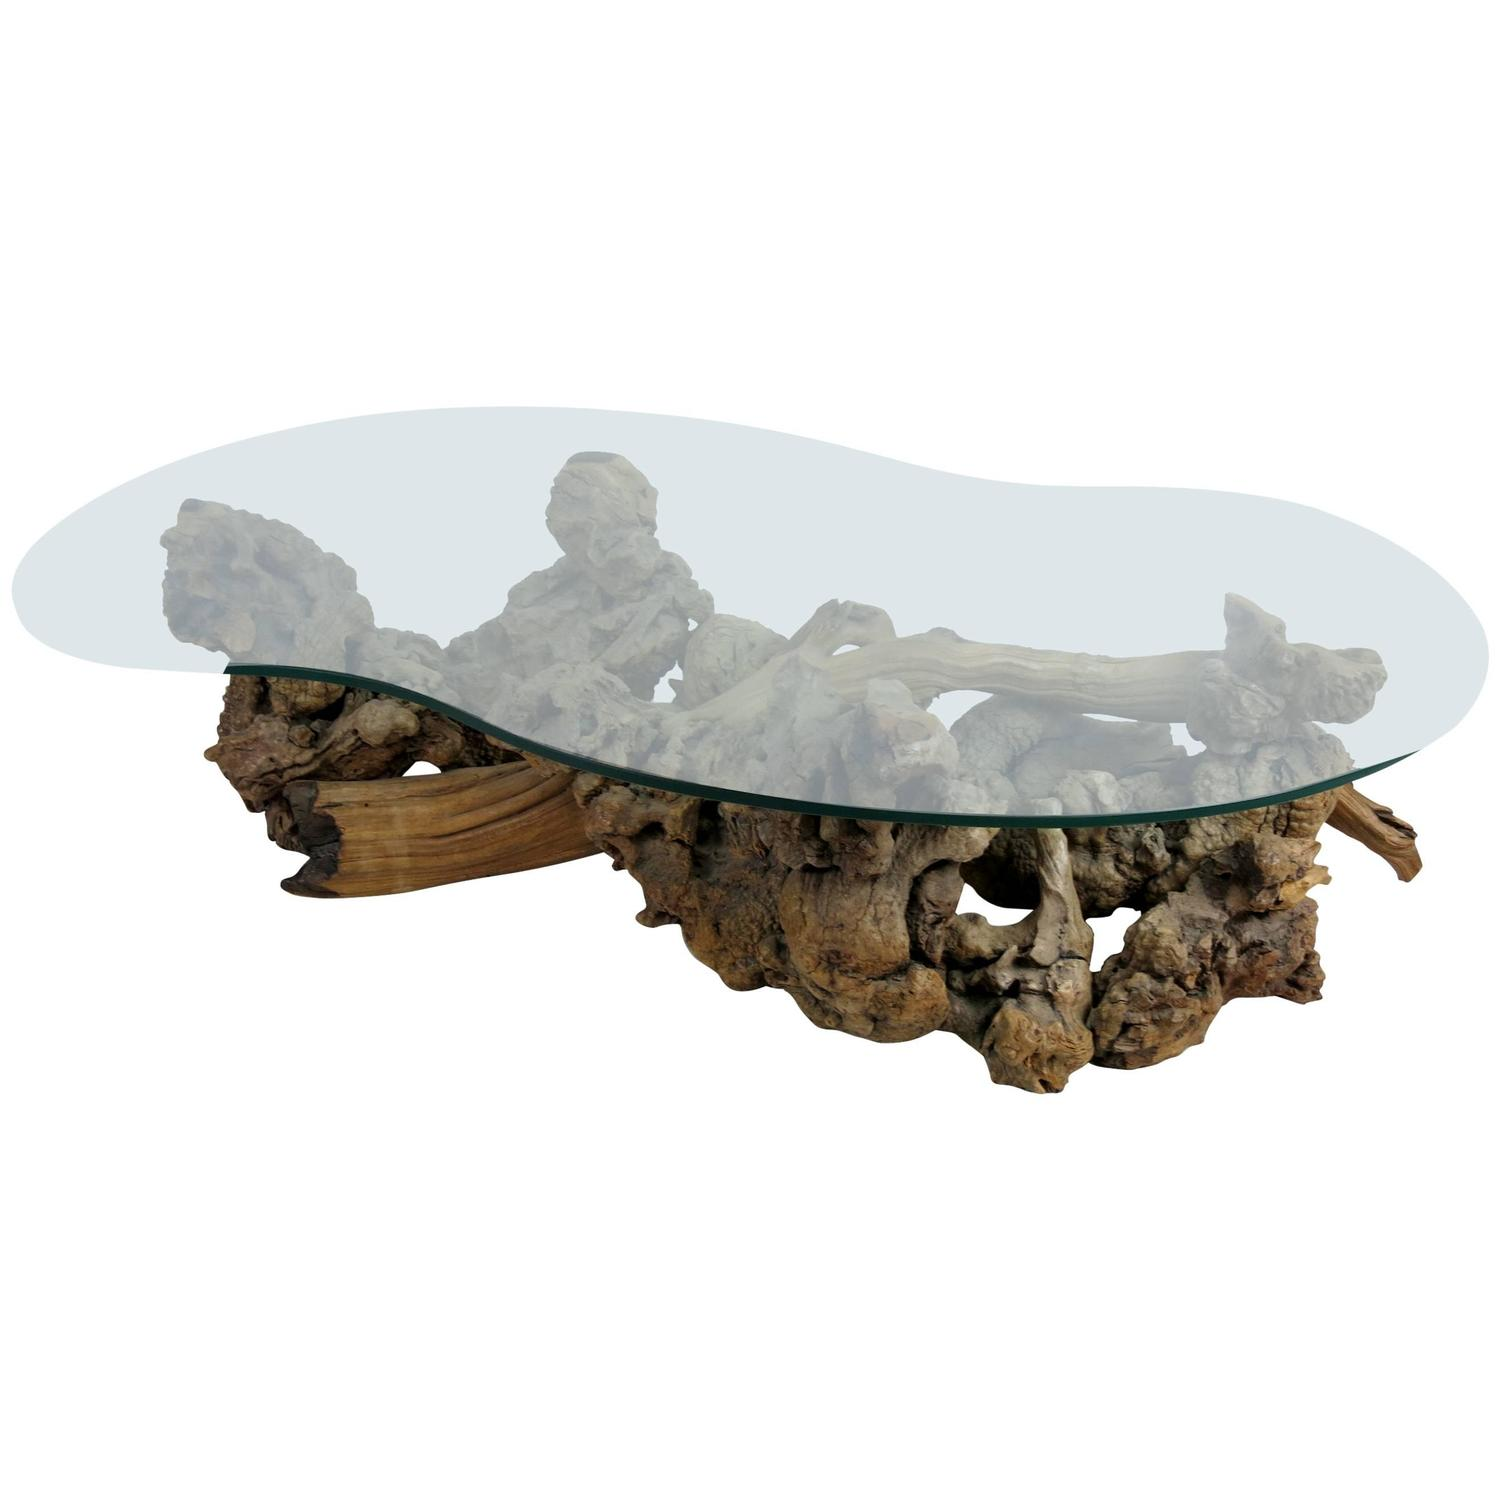 Root Burl Driftwood Coffee Table with Free Form Glass Top at